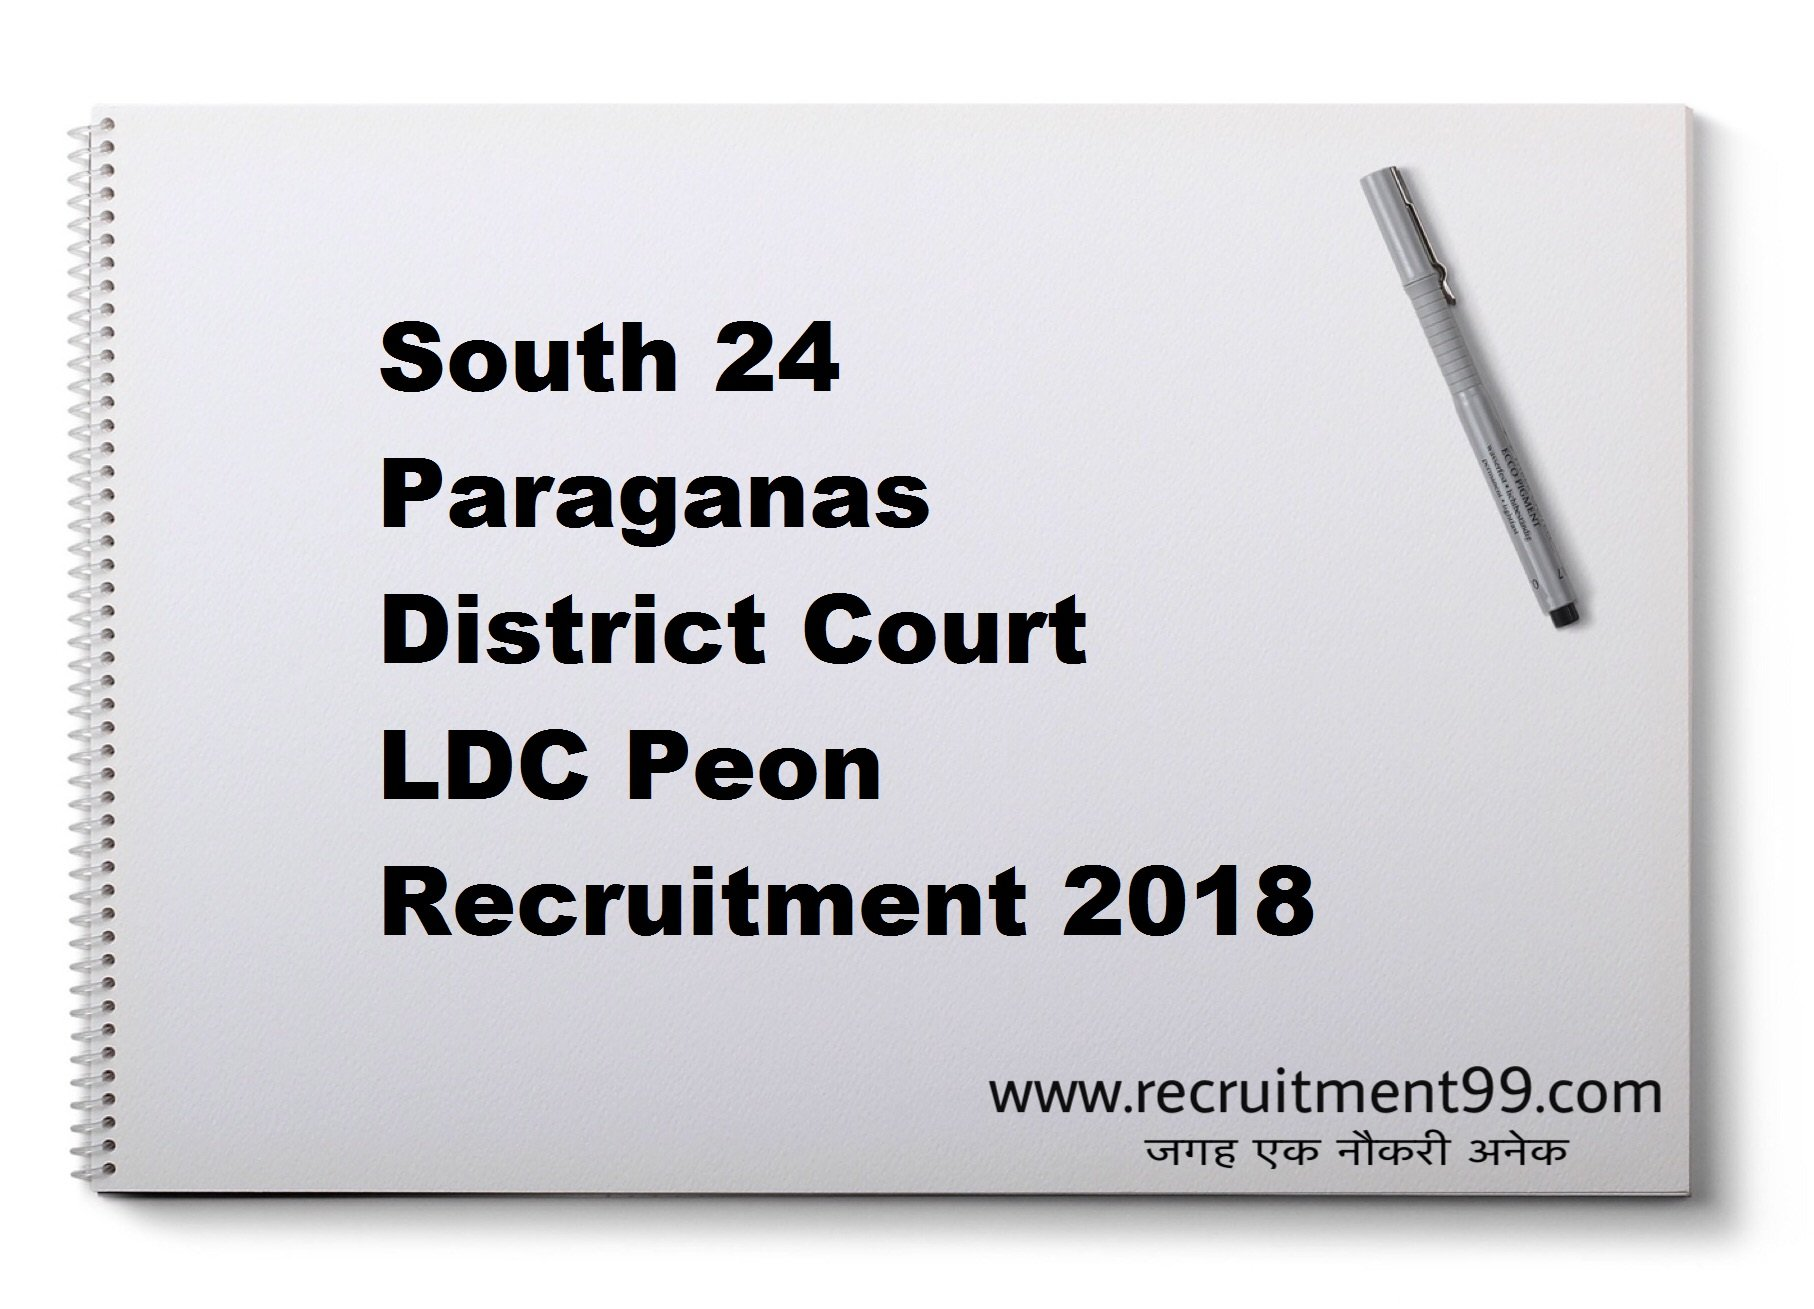 South 24 Paraganas District Court LDC Peon Recruitment Admit Card Result 2018